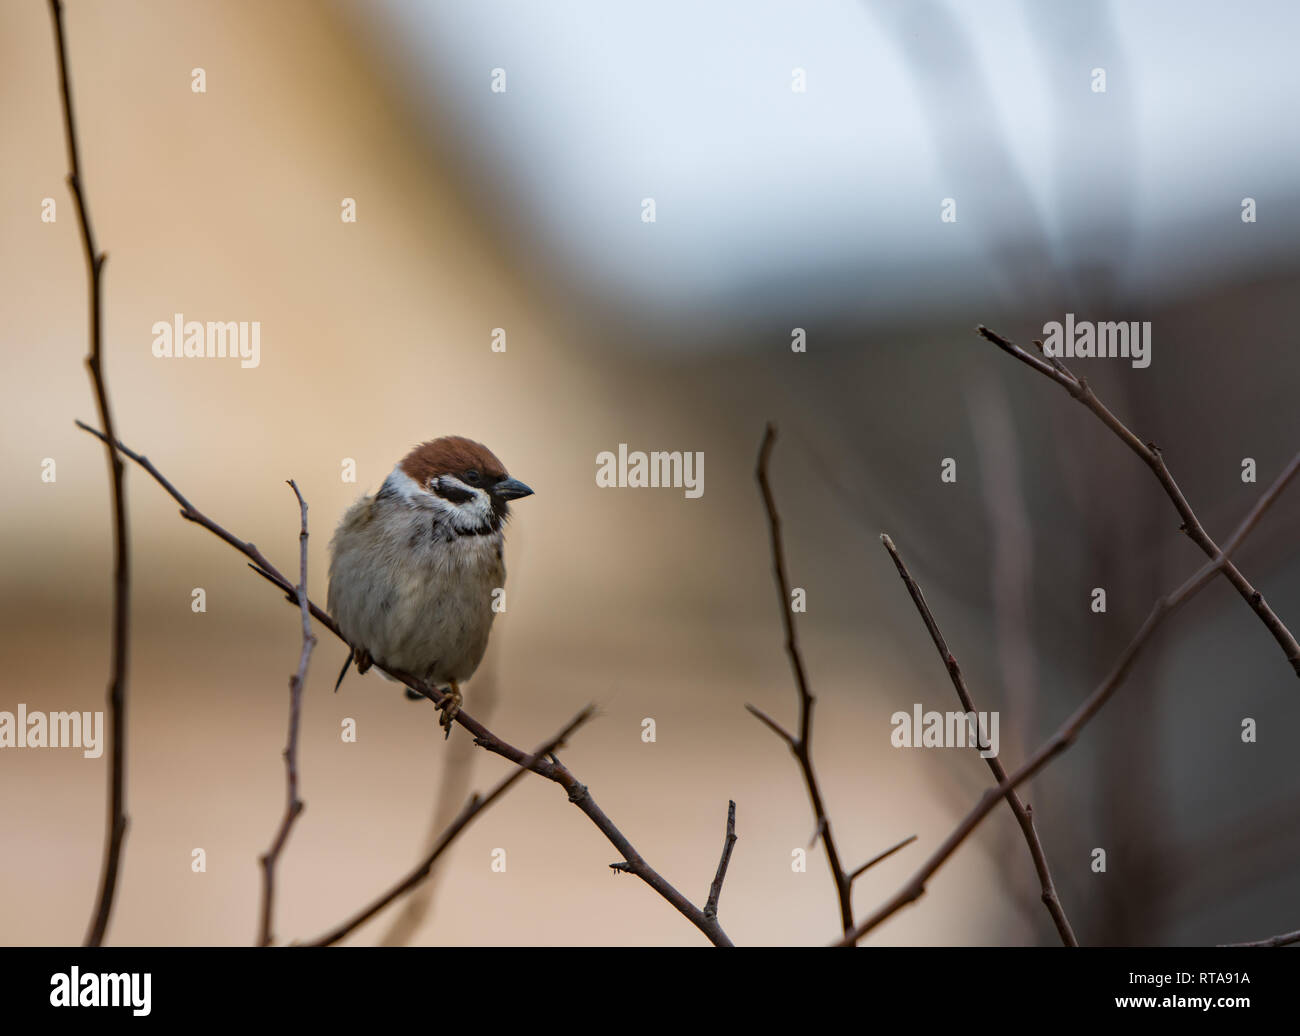 A beautiful little sparrow chirp at the branch, and srkuke on the verge - Stock Image